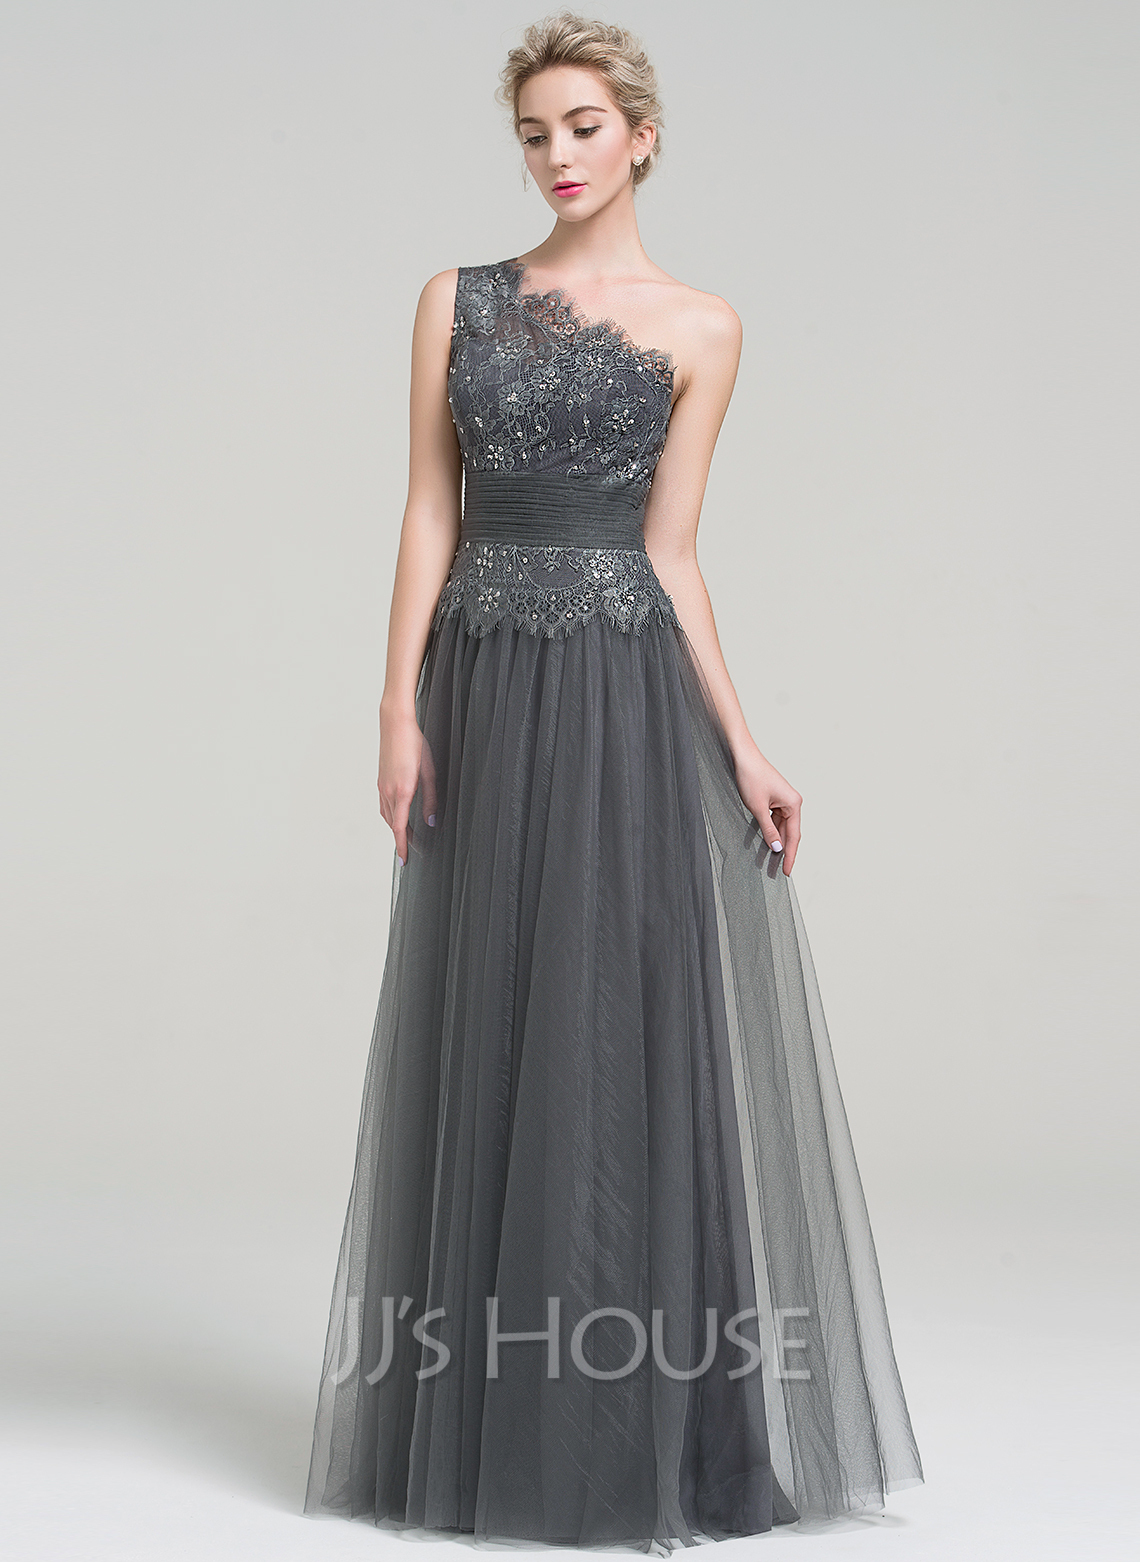 A-Line/Princess One-Shoulder Floor-Length Tulle Evening Dress With Ruffle Beading Sequins